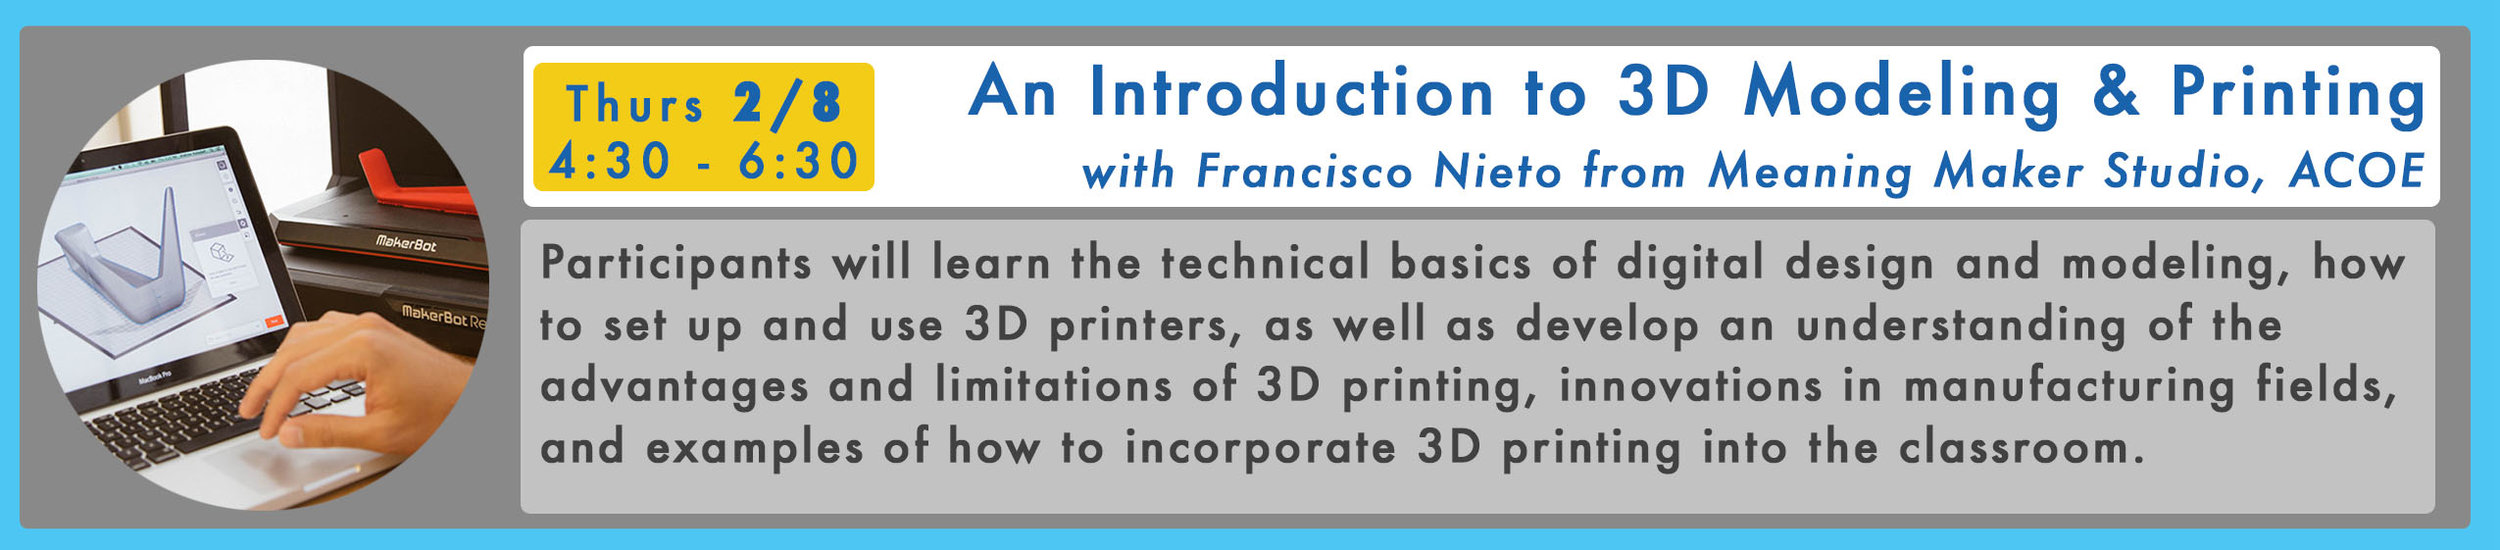 RSVP Here  for An Introduction to 3D Modeling & Printing